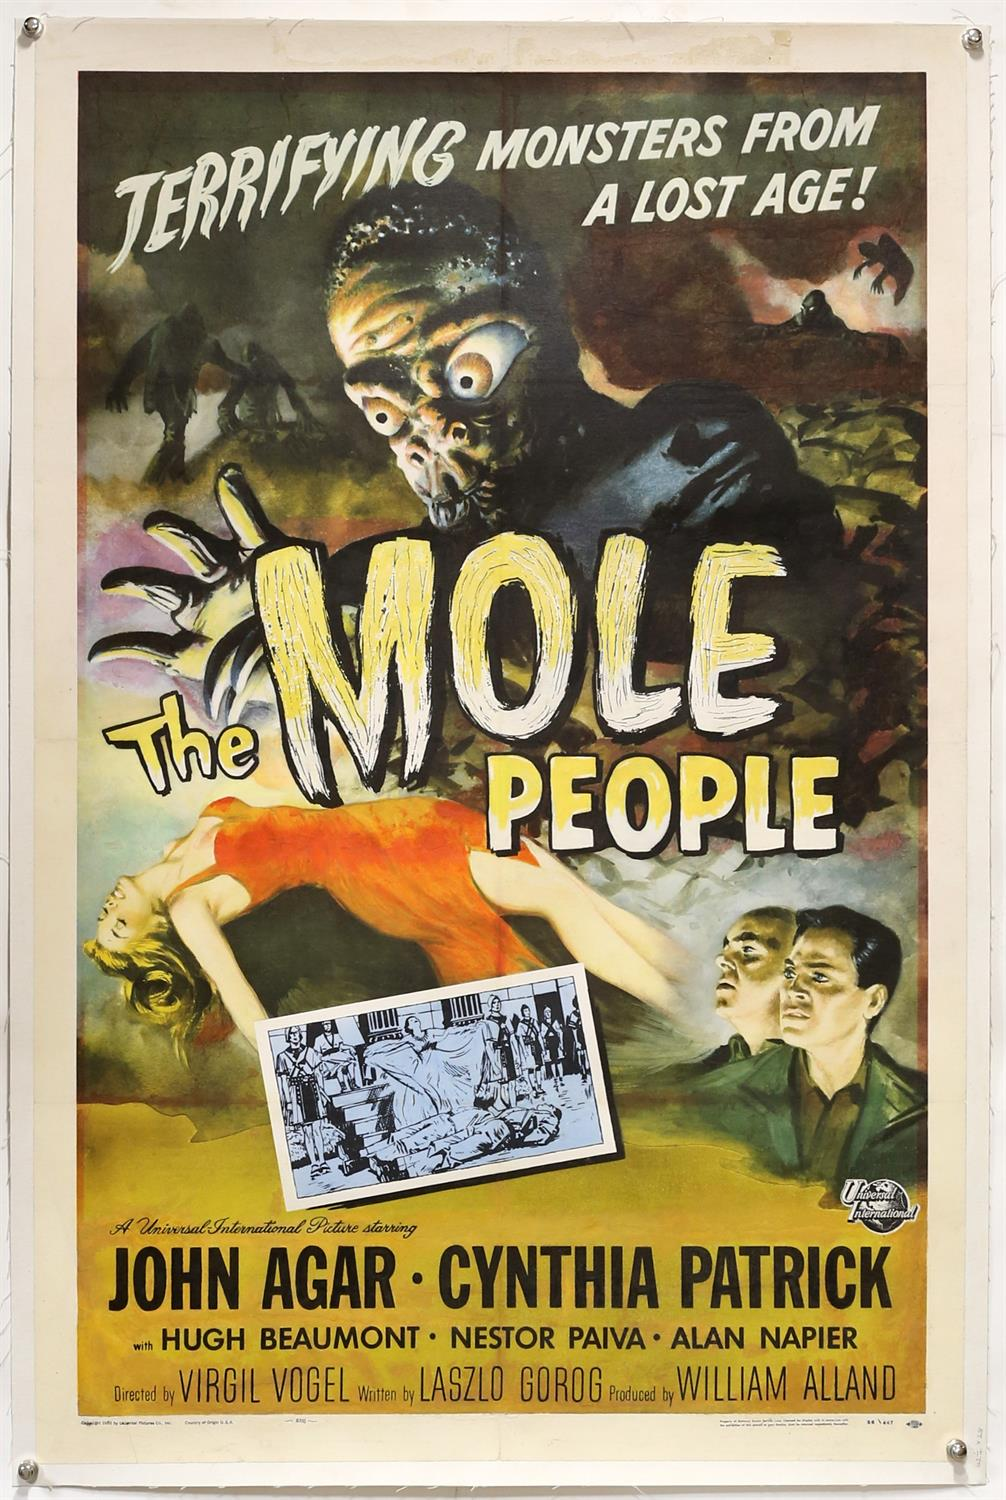 The Mole People (1956) US One Sheet film poster, artwork by Joseph Smith, linen backed,